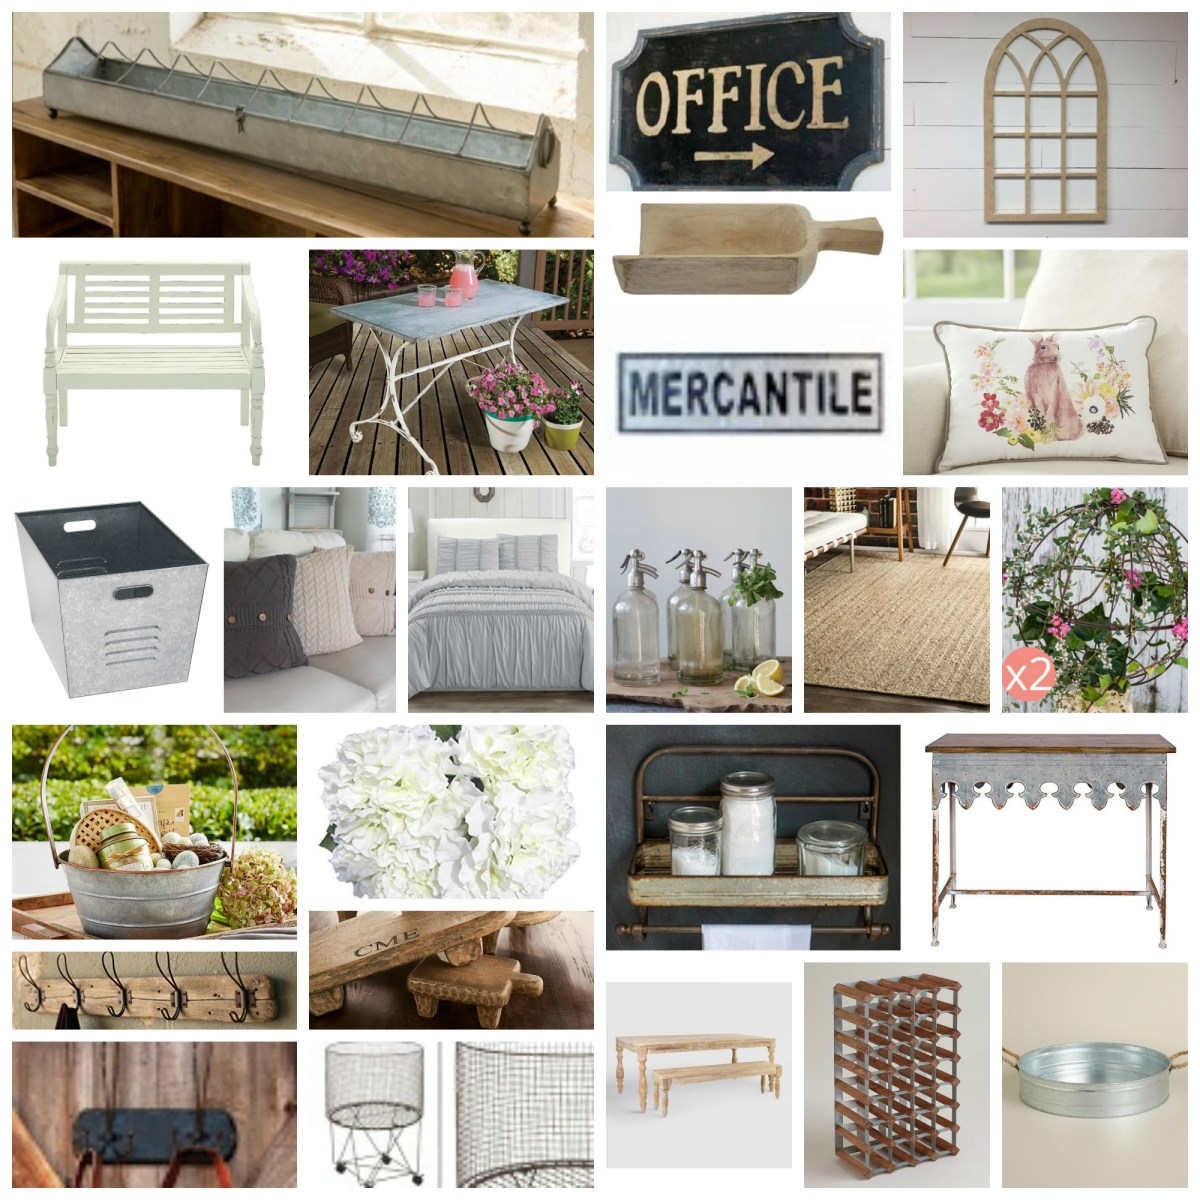 Home Decor Daily Deals: Tuesday, March 21, 2017